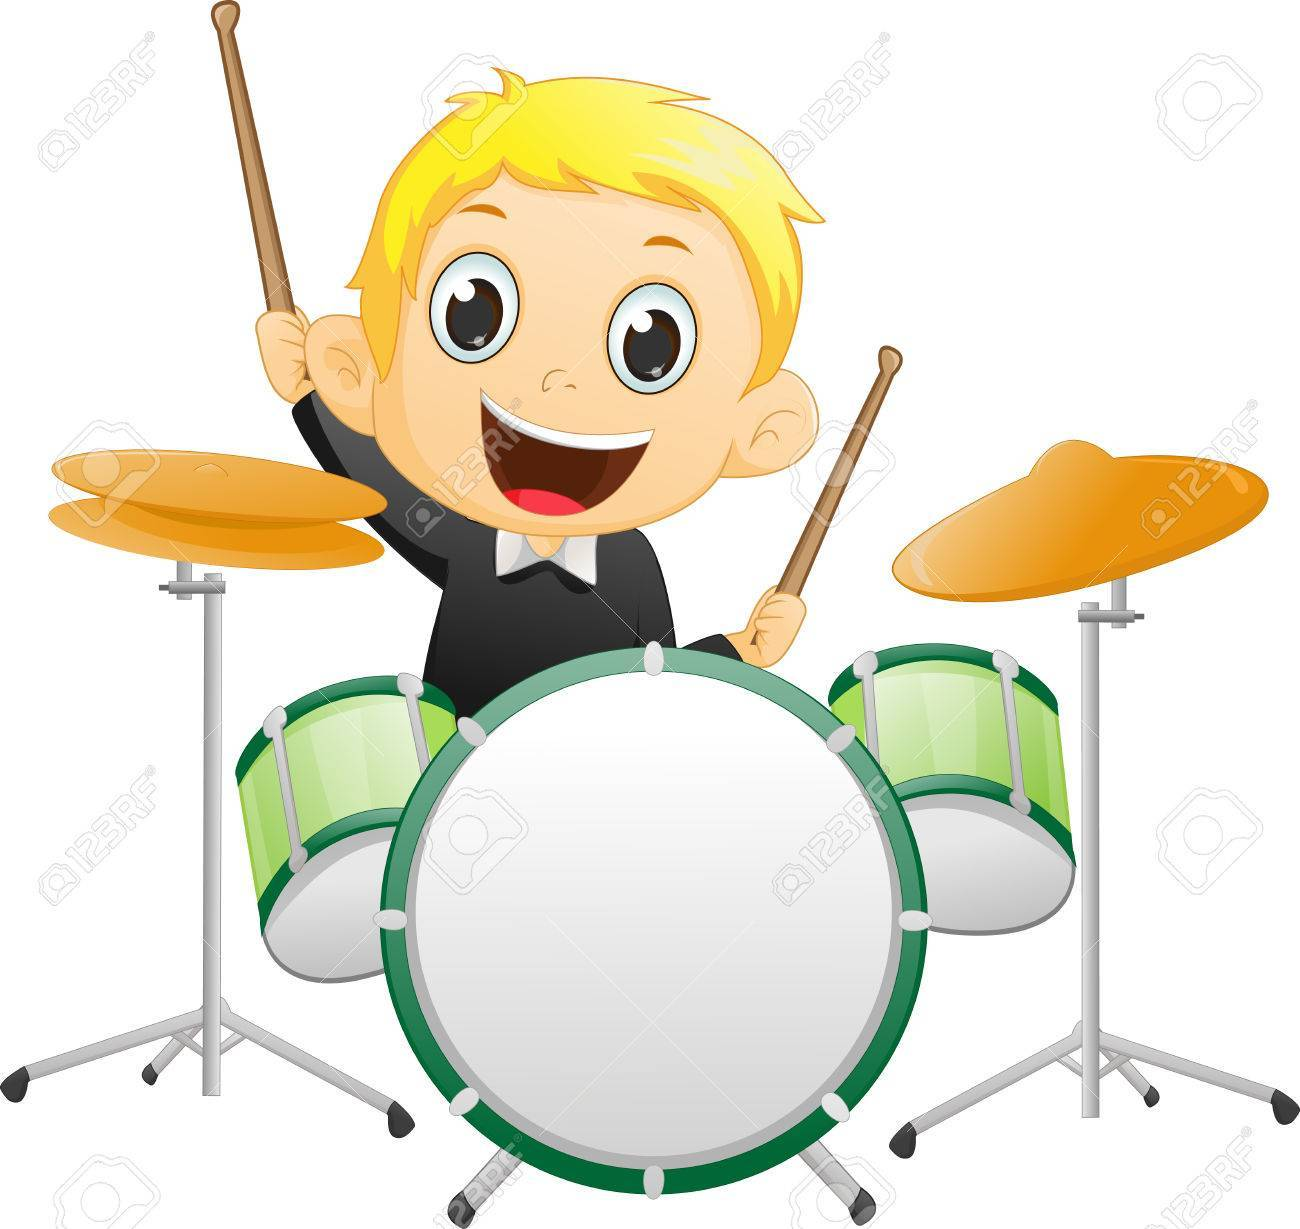 Boy playing drums clipart 7 » Clipart Portal.